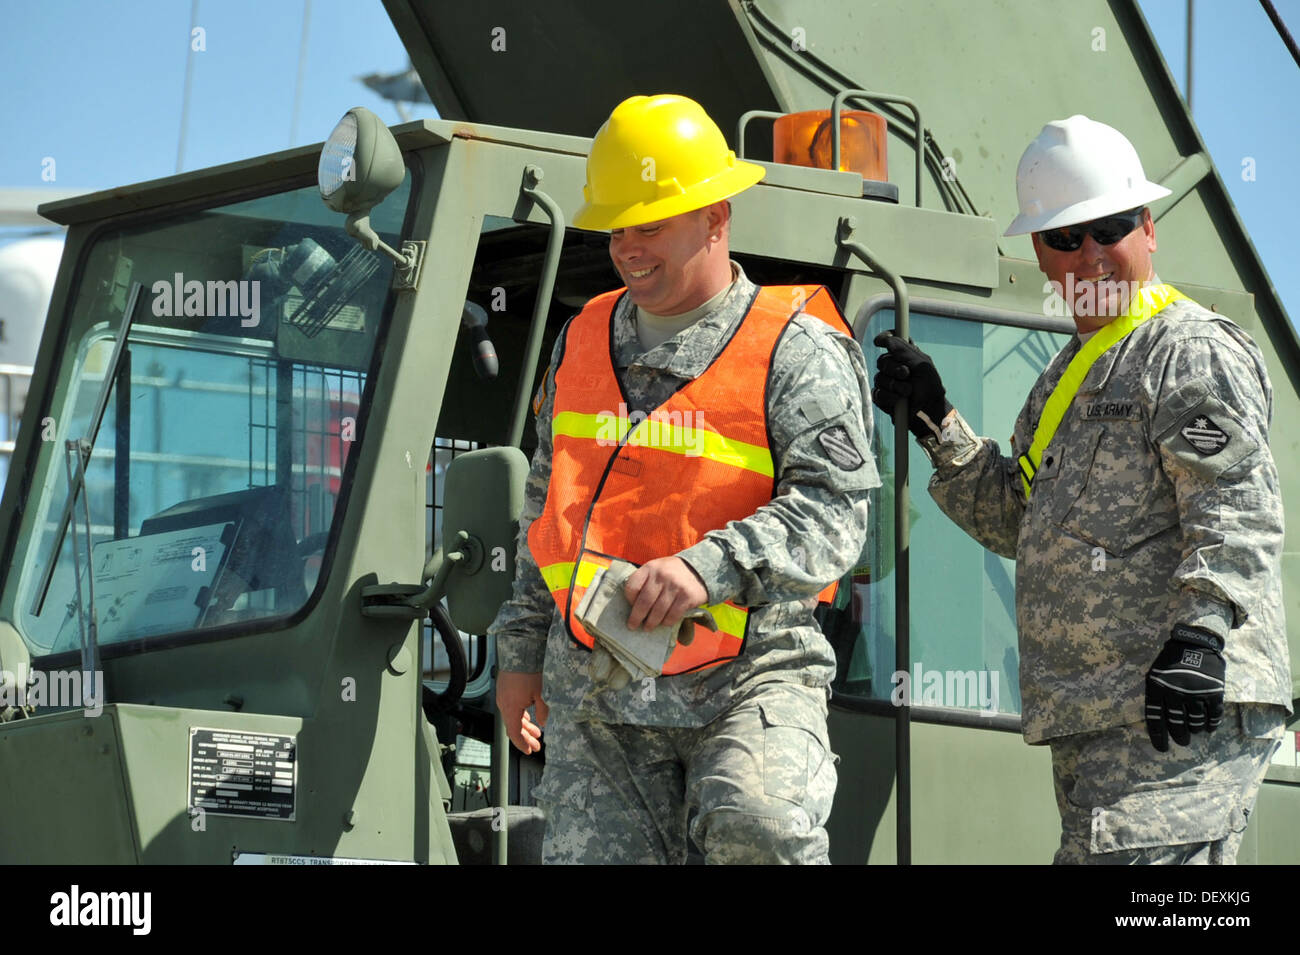 PORT HUENEME, Calif. – U.S. Army Reserve Spc. Gary Borne, right, mentors Spc. Steven Looney, left, both cargo specialists assign - Stock Image